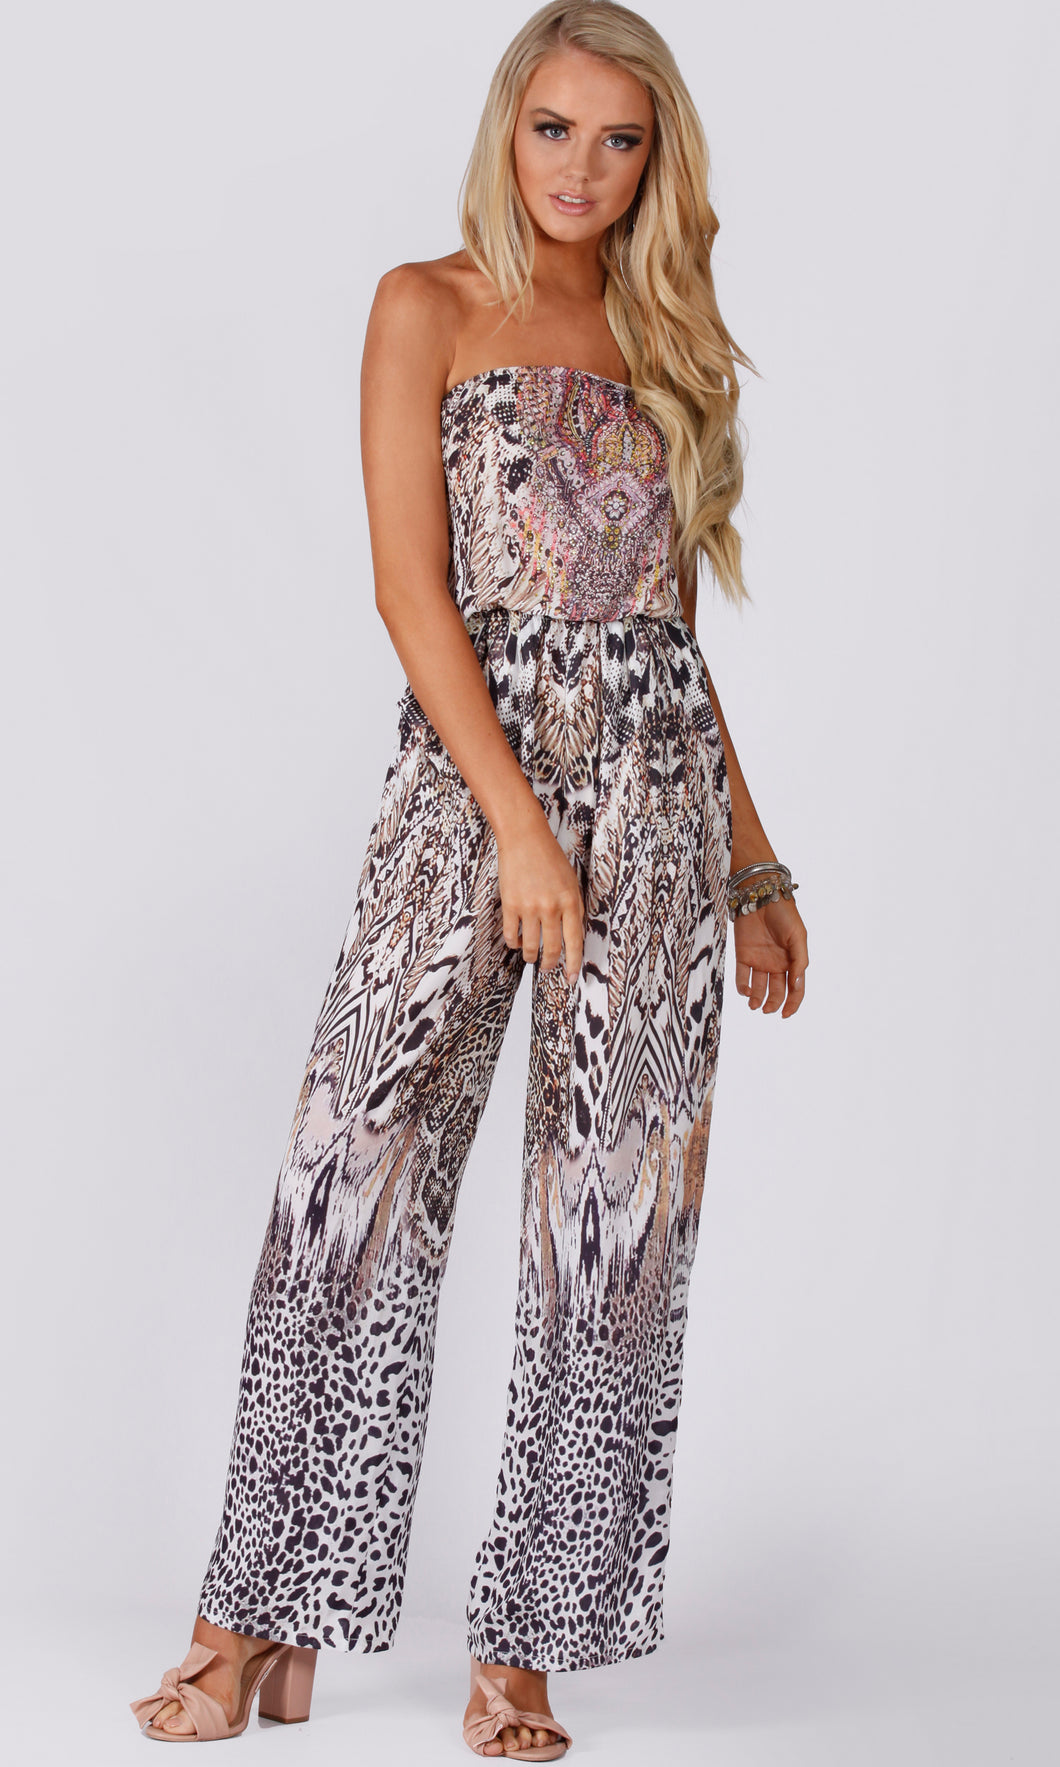 LV183-5SS Leopard Off- Shoulder Jumpsuit (Pack)